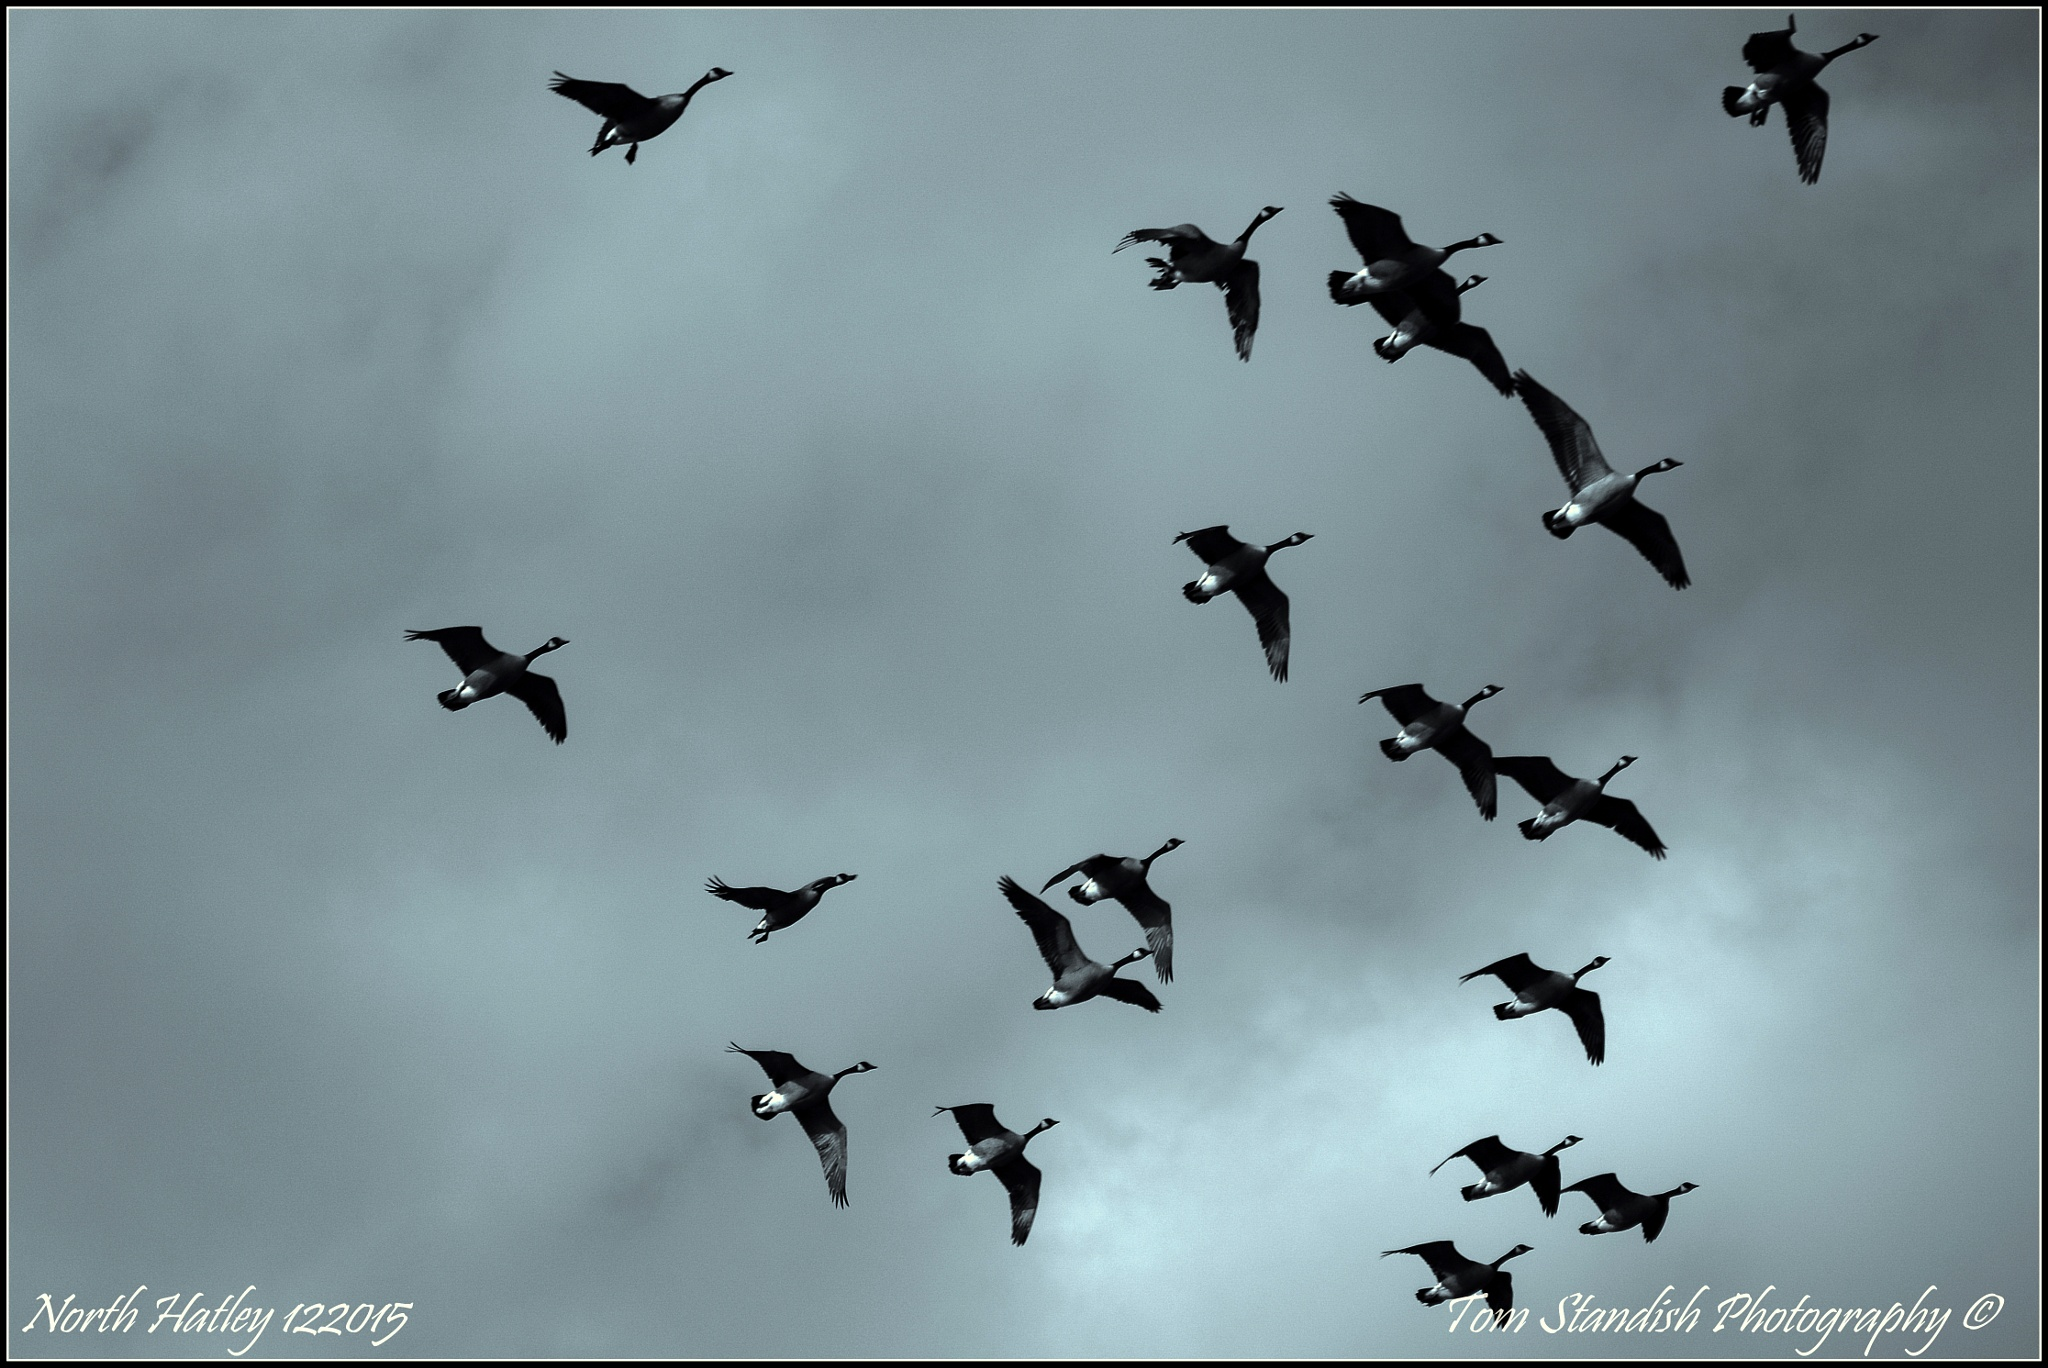 Overhead Geese  by Tom Standish